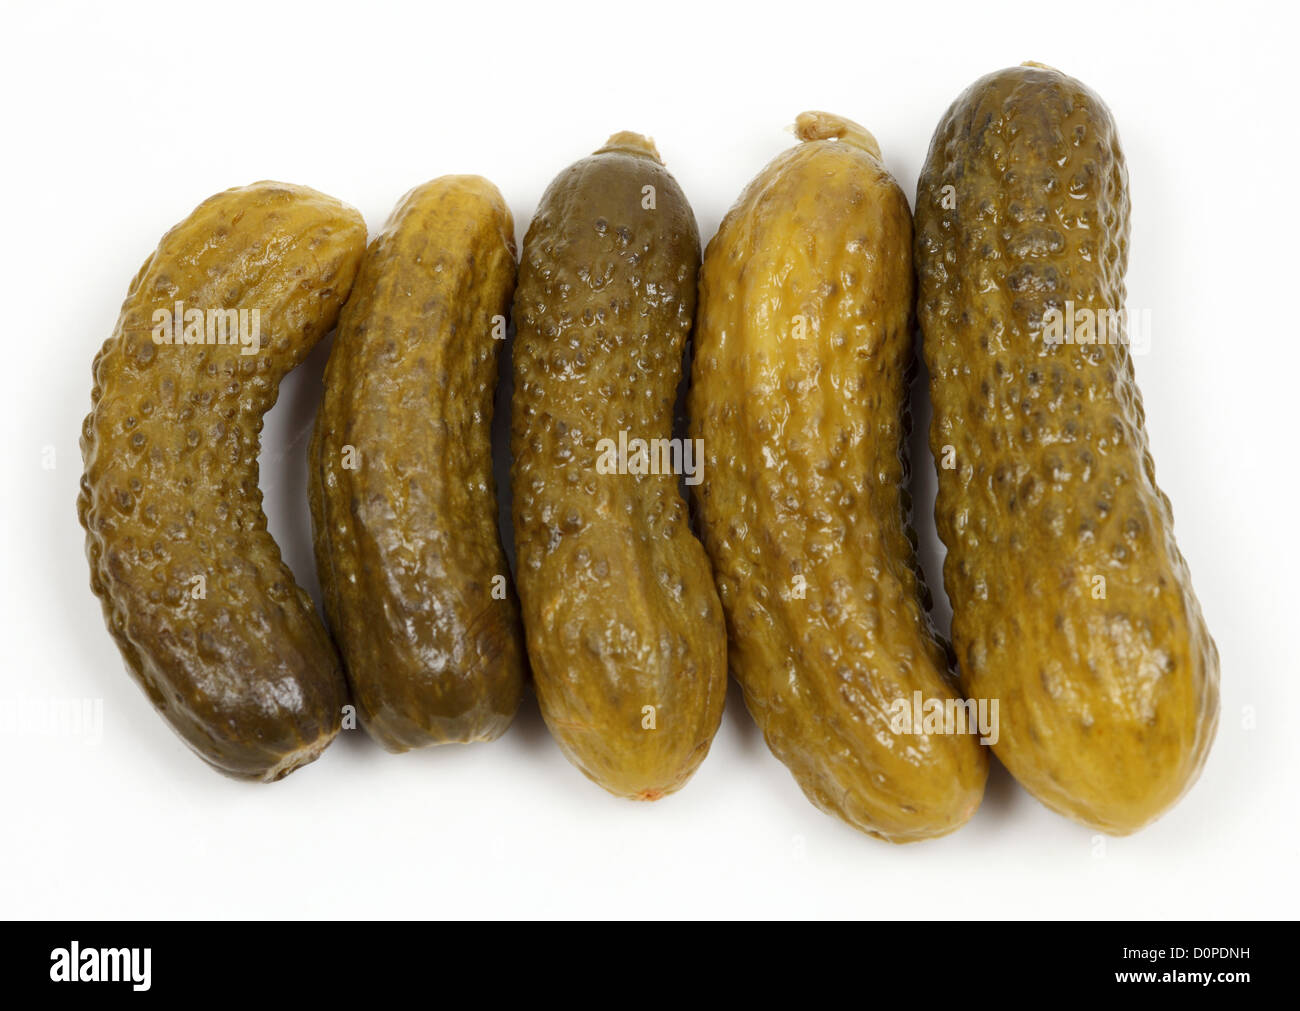 Gherkin pickles closeup on white background - Stock Image